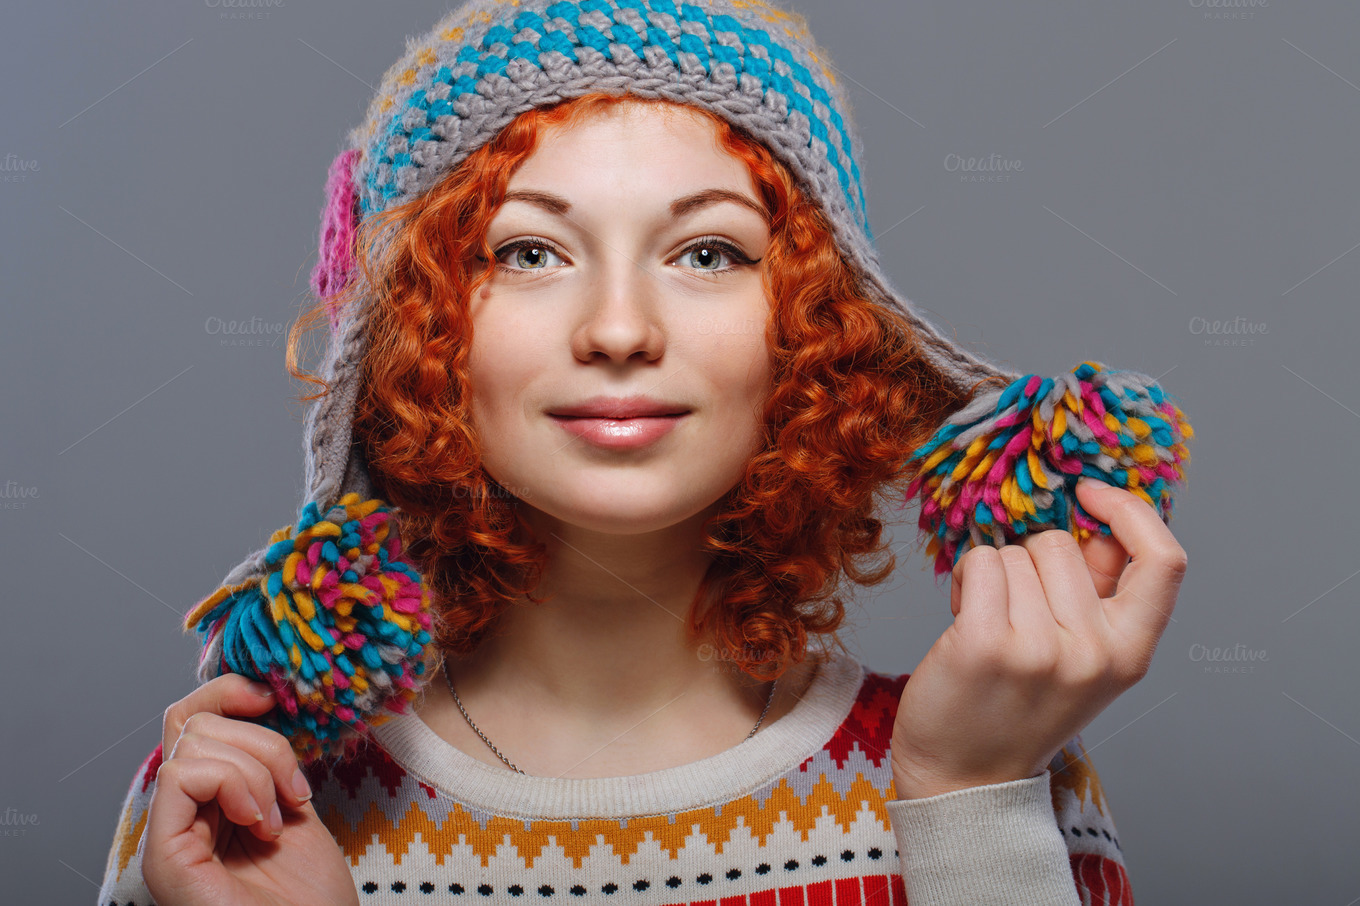 Girl-in-knitted-cap